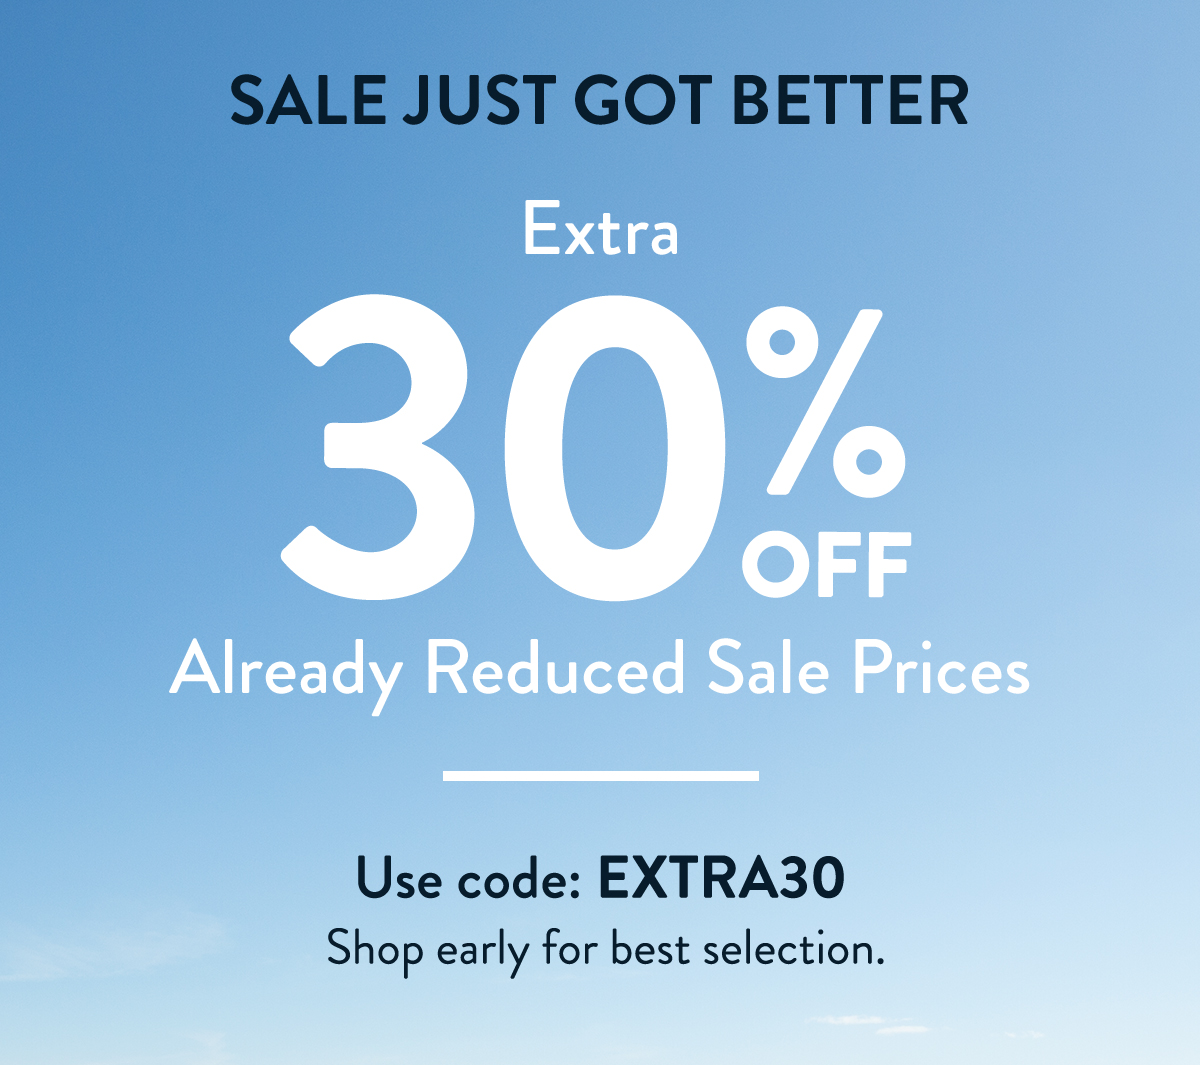 SALE JUST GOT BETTER. Extra 30% OFF Already reduced sale prices. Use code: EXTRA30. Shop early for best selection.